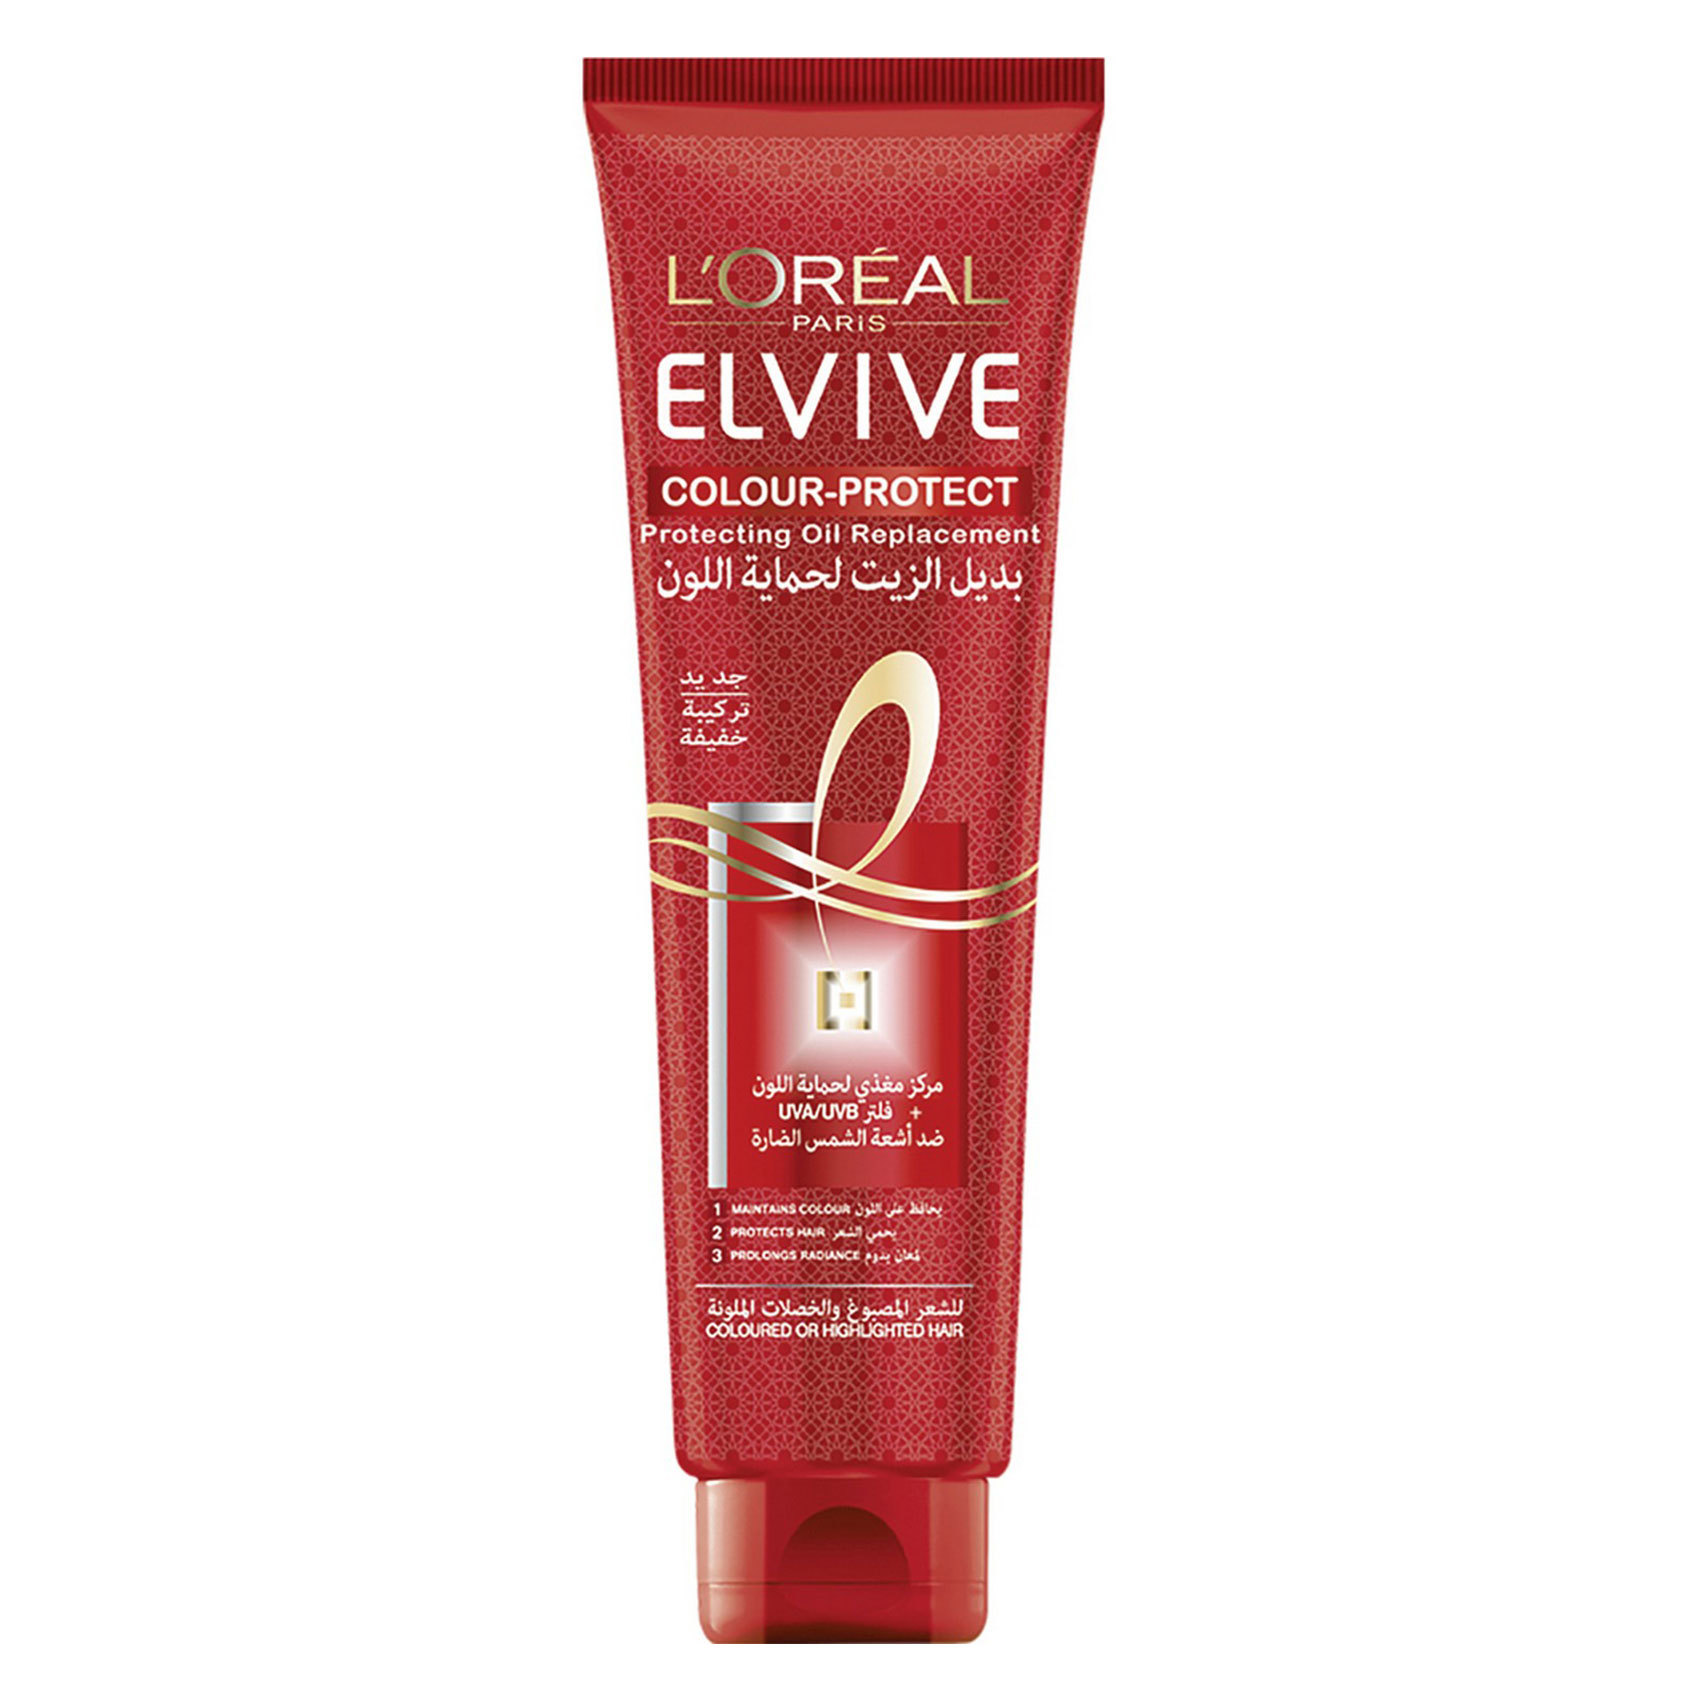 ELVIVE OIL REP. COL. PROTECT 300ML